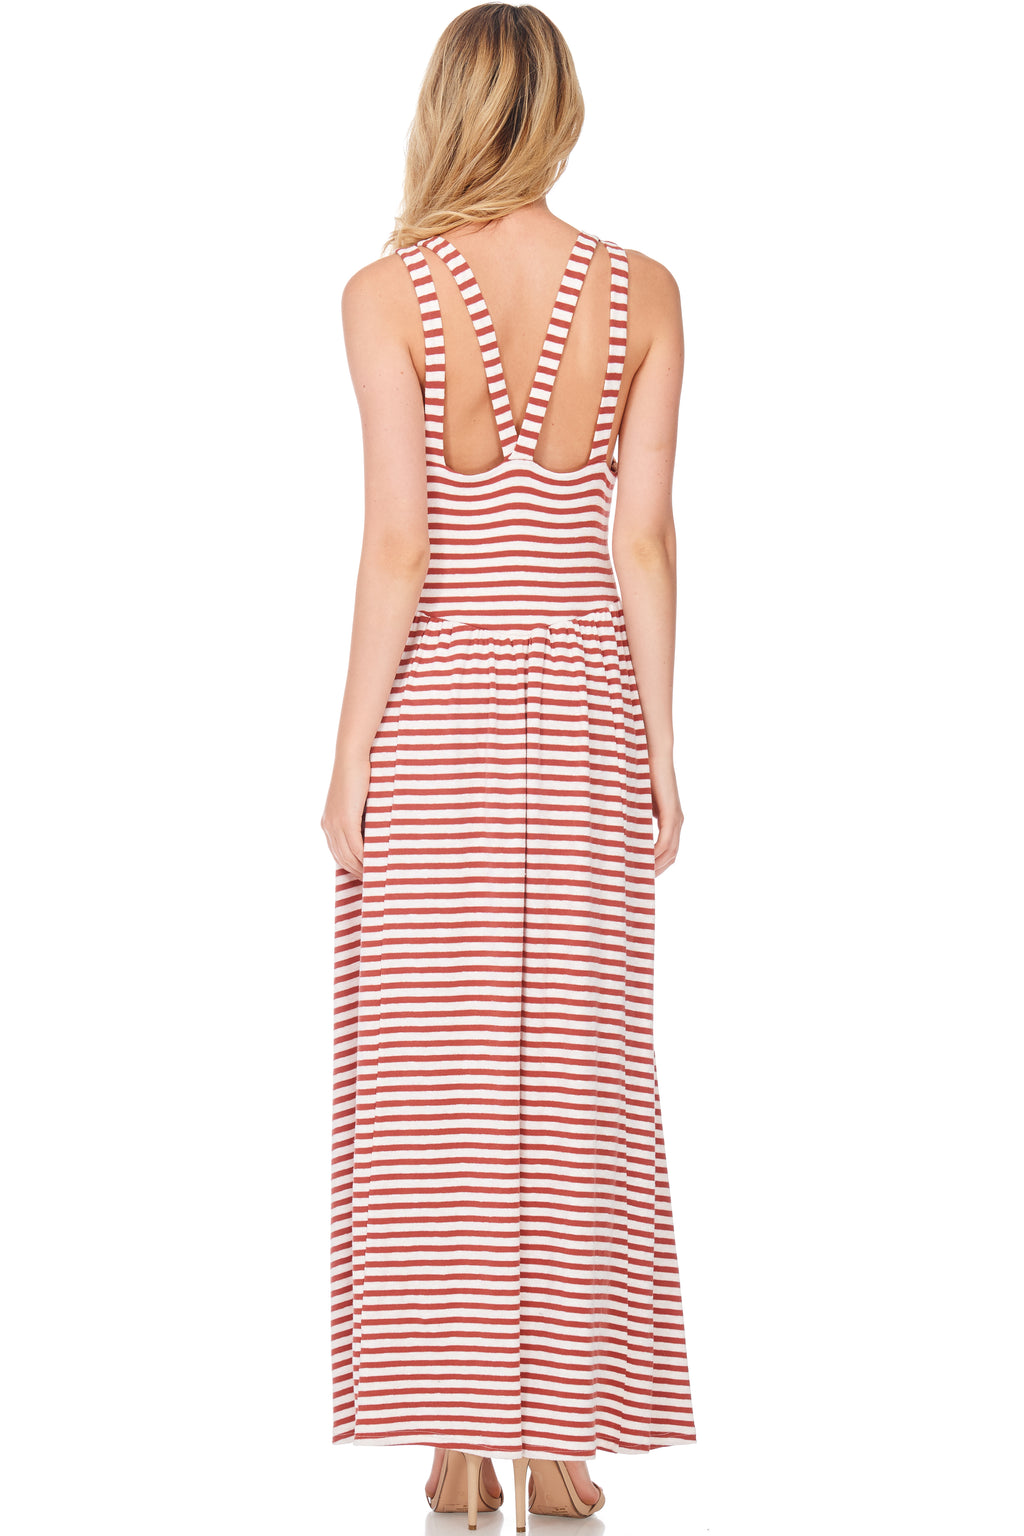 S18-112 Contrast Striped Maxi Dress